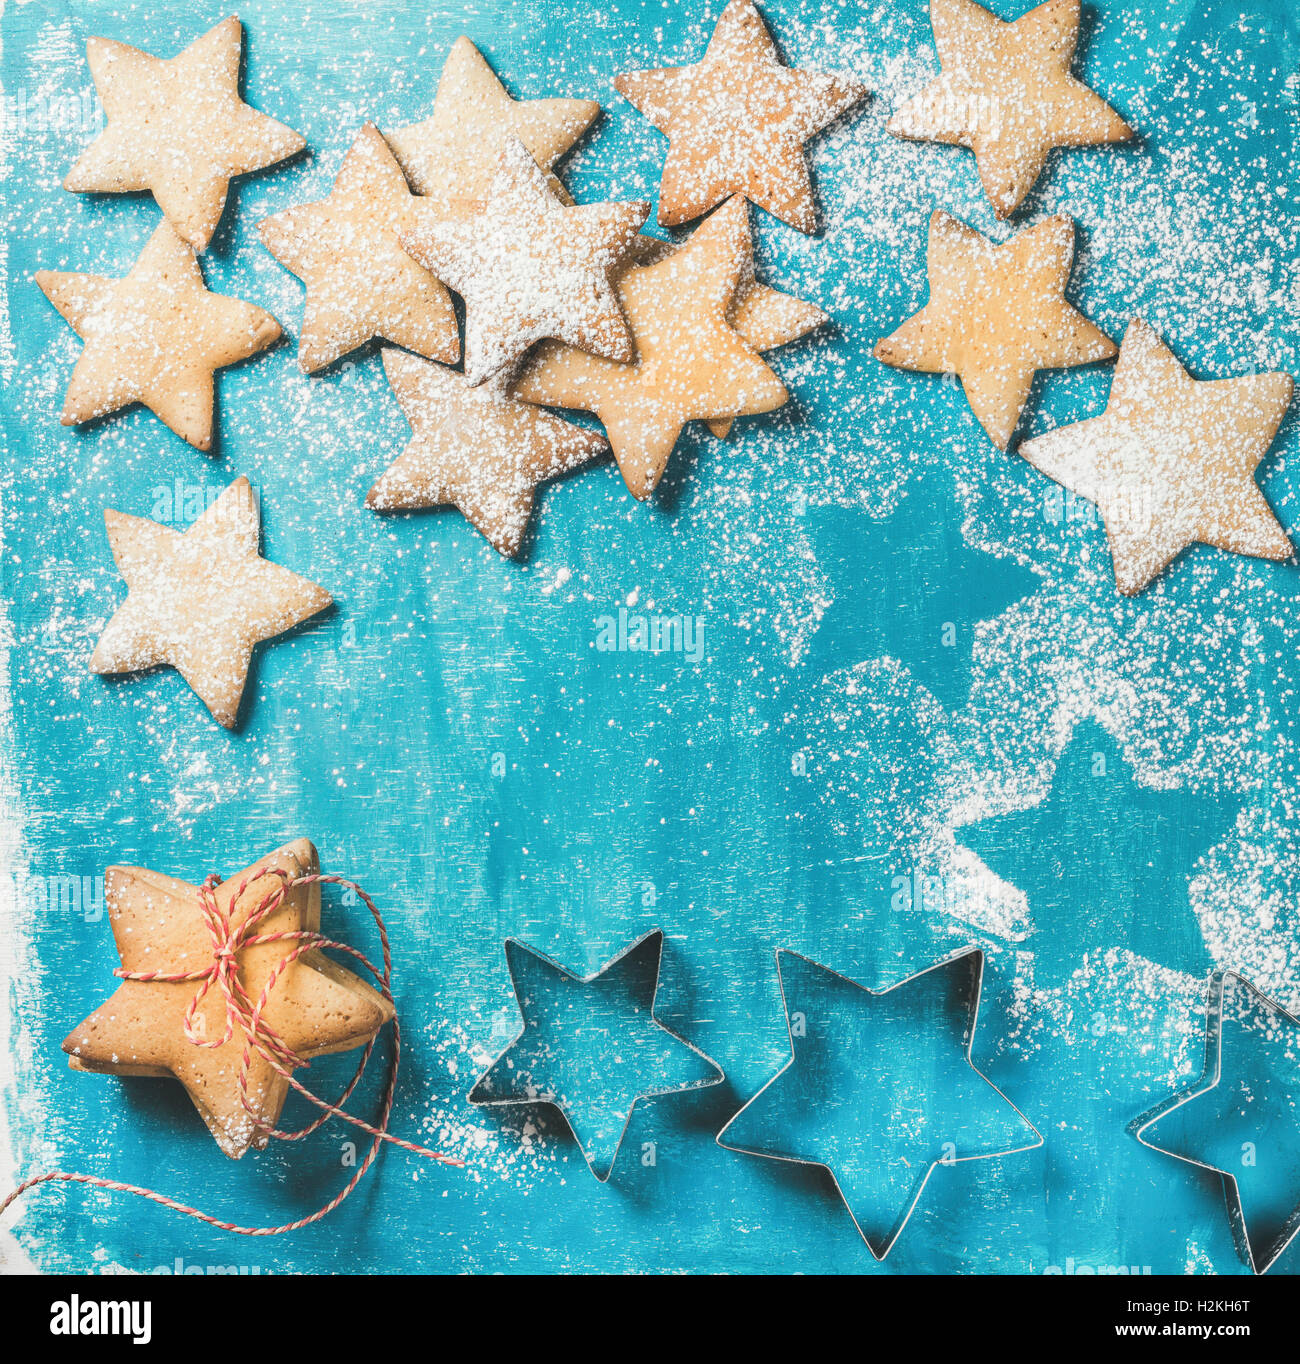 Christmas or New Year holiday food background. Sweet gingerbread cookies in shape of star sprinkled with sugar powder - Stock Image